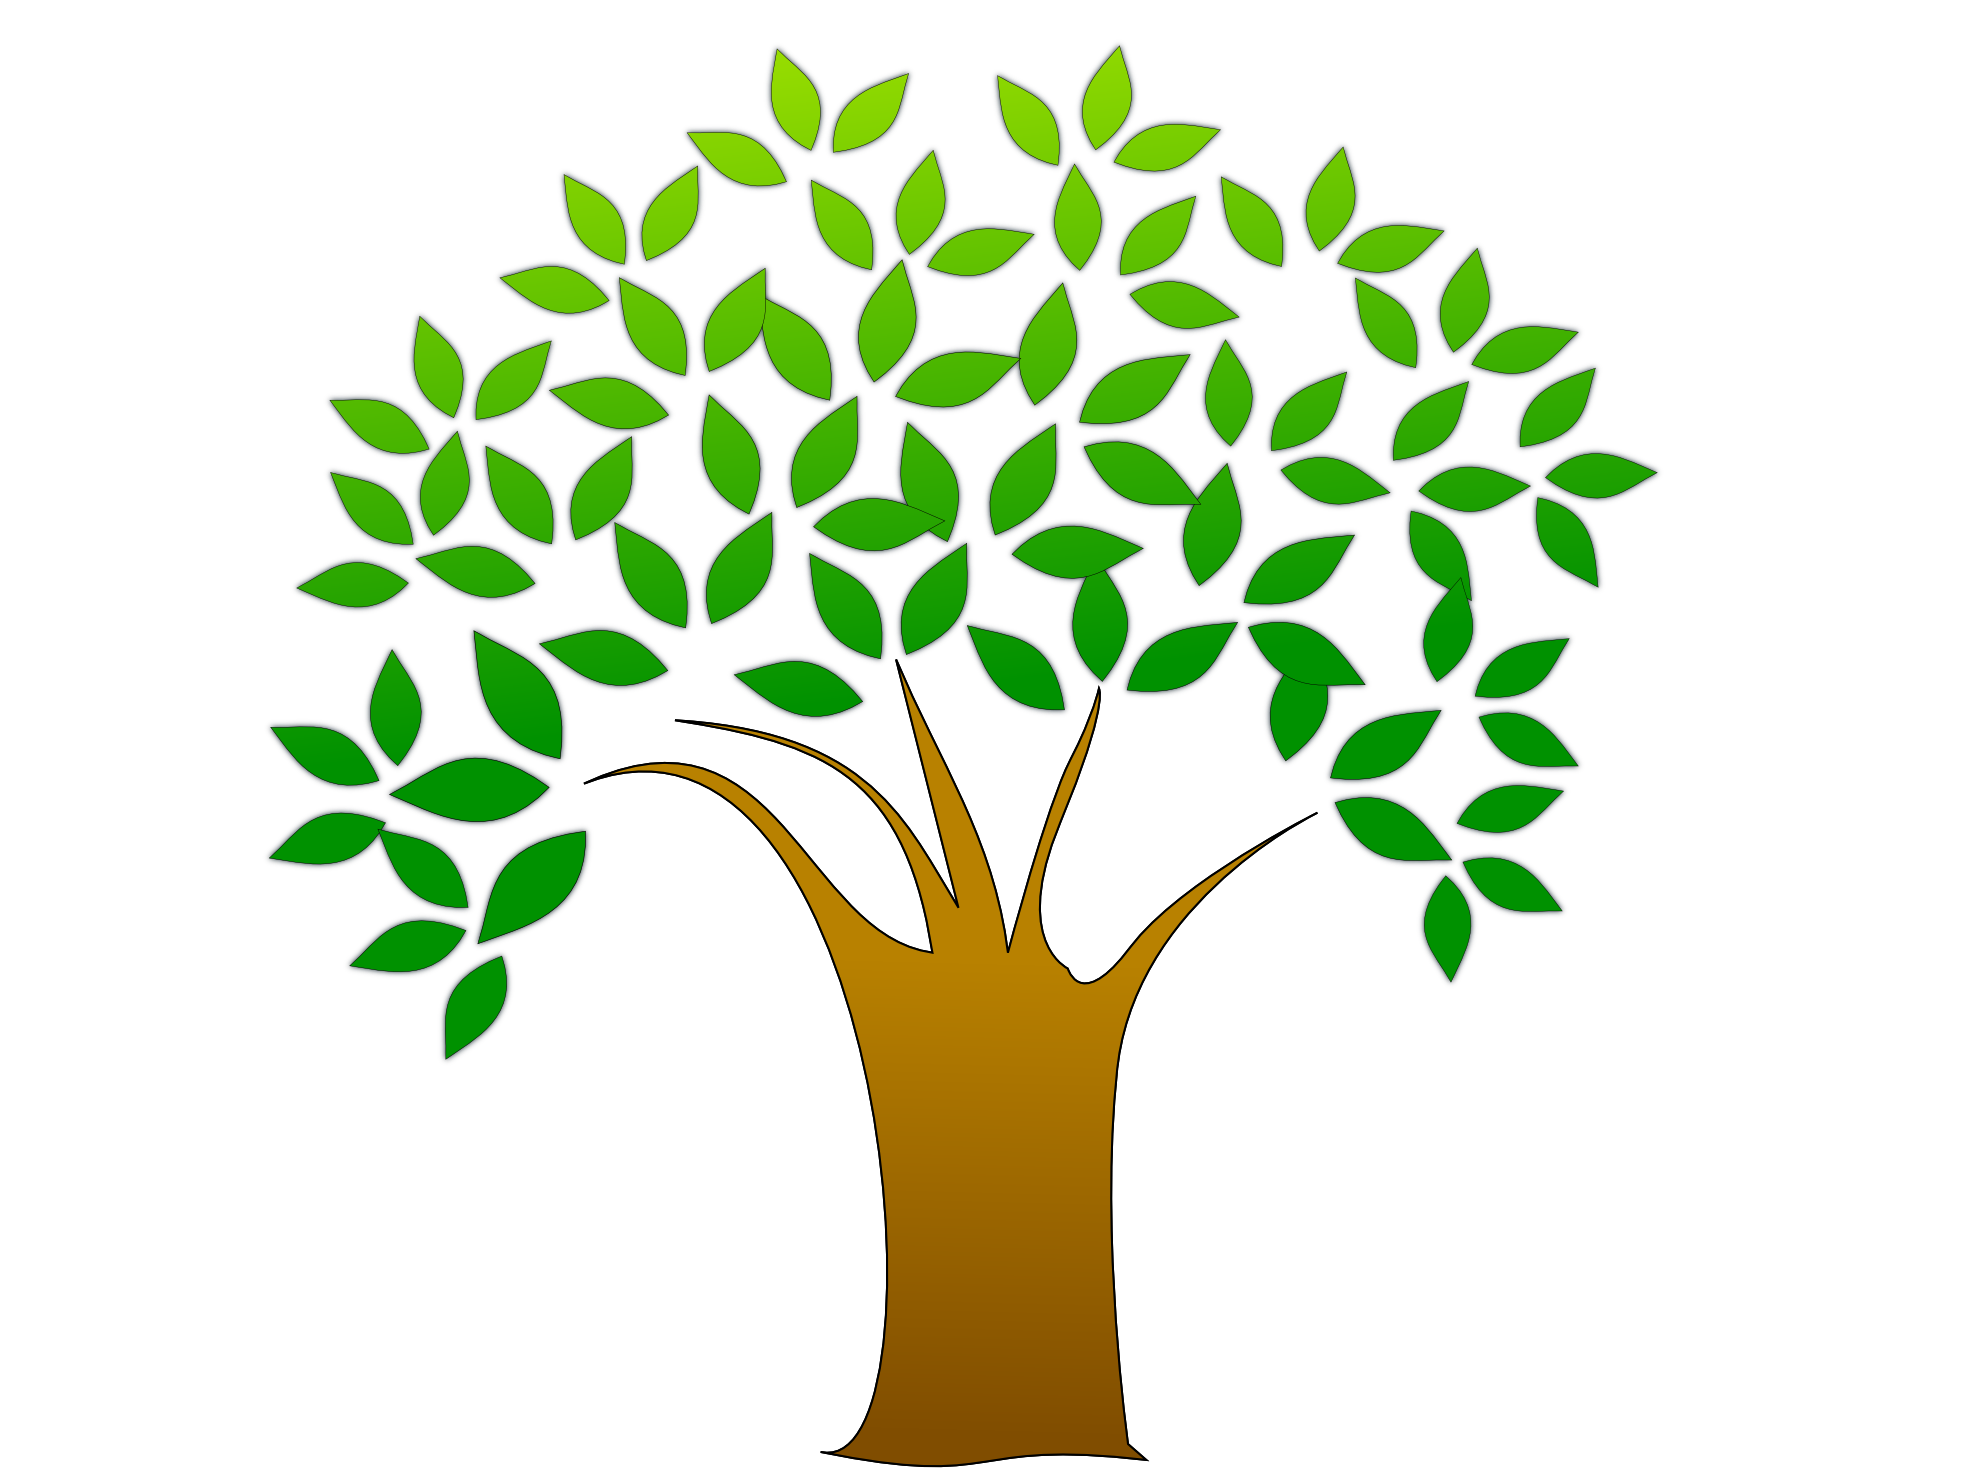 Transparent clipart tree